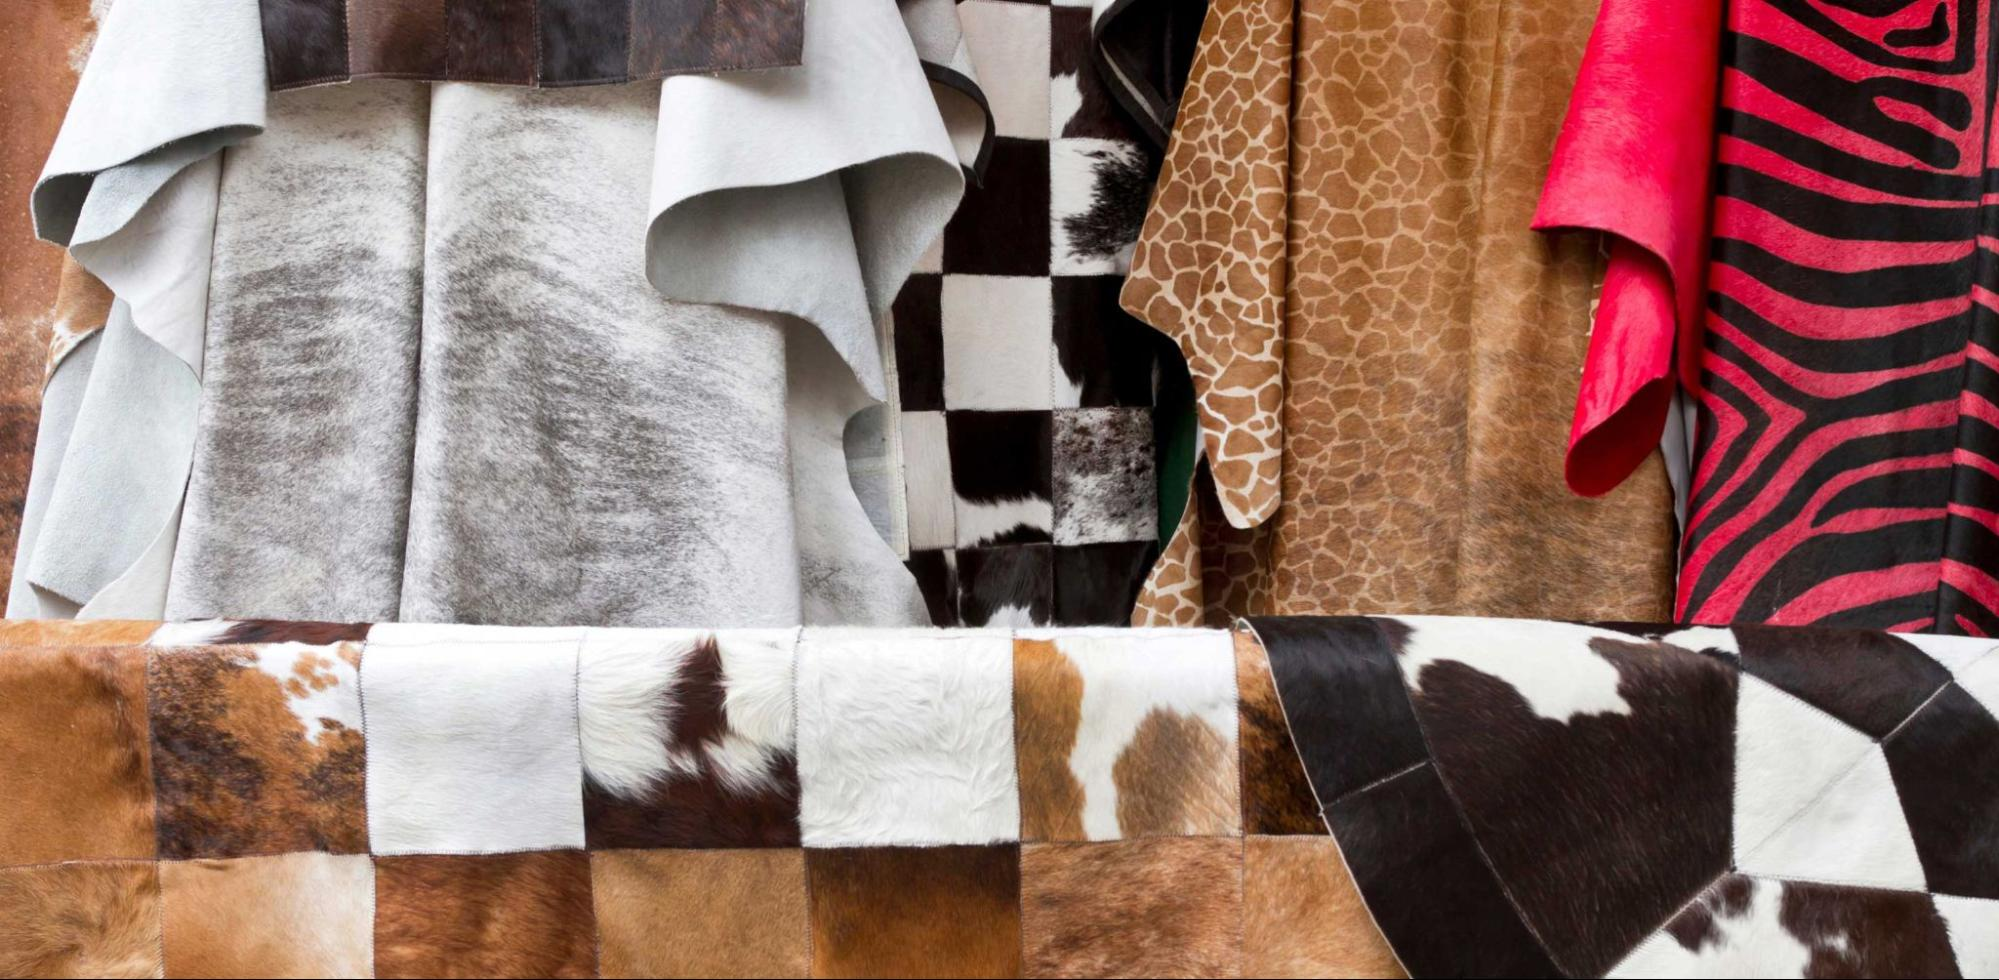 What Causes Leather To Discolor